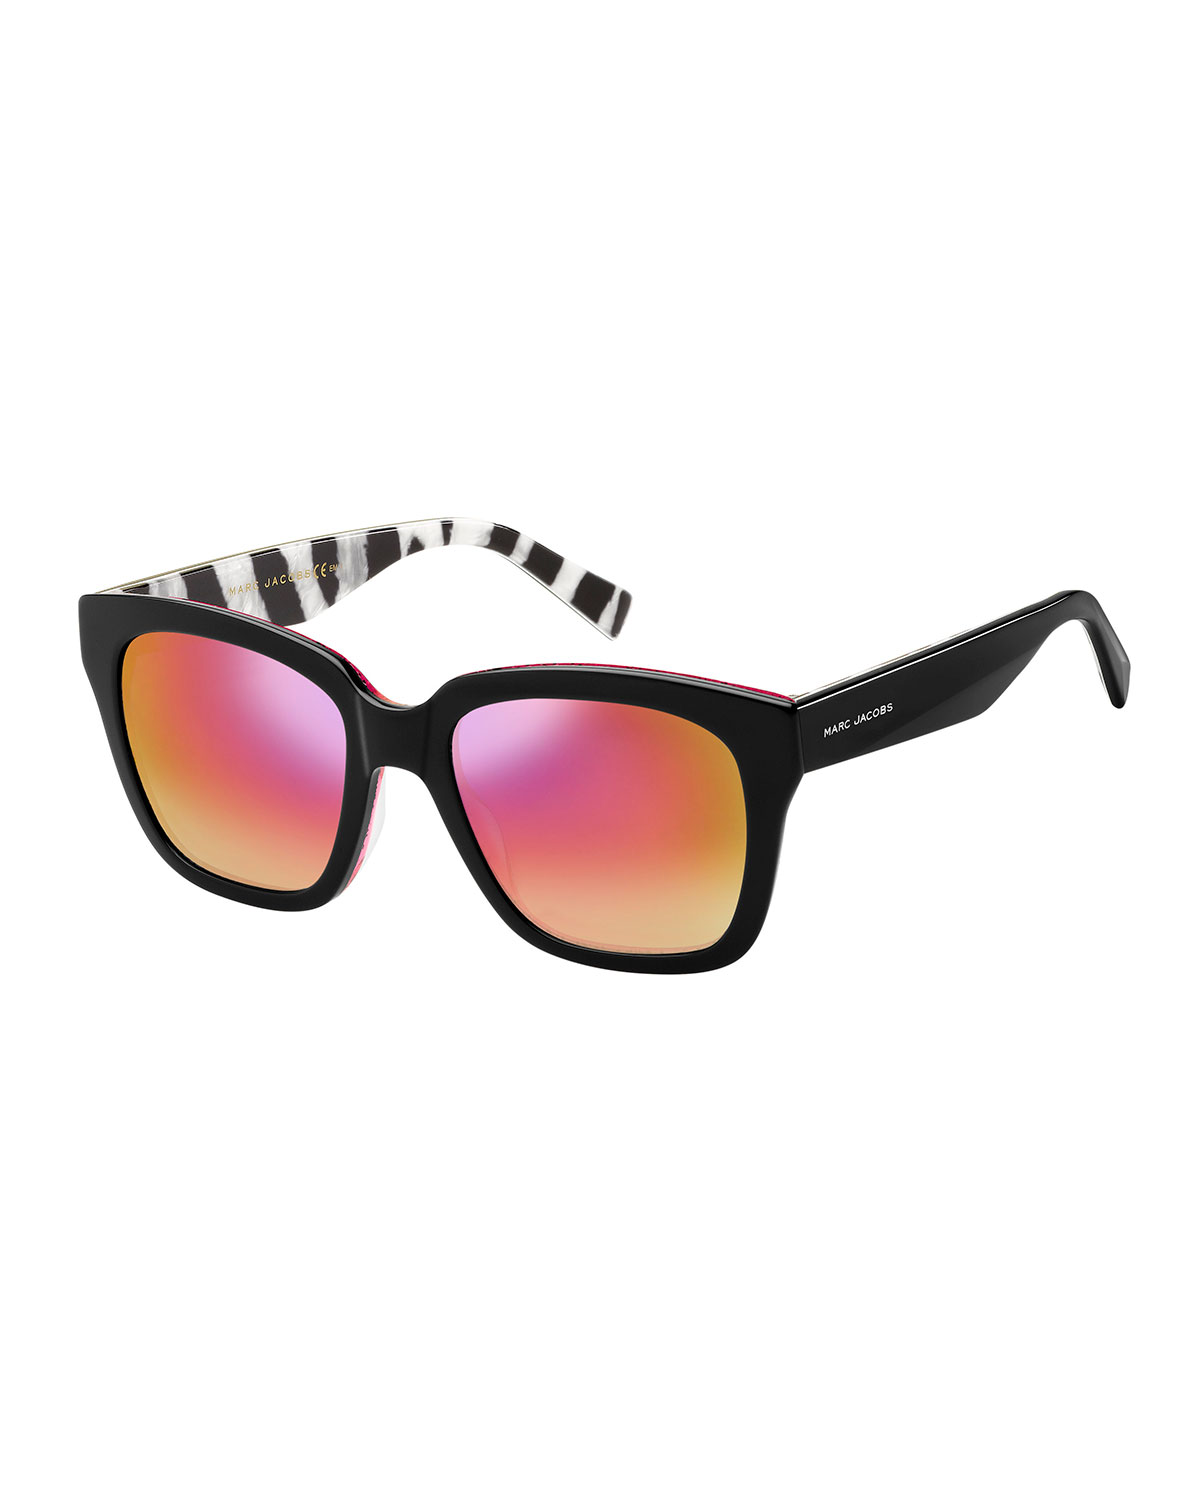 Mirrored Sunglasses w/ Zebra-Print Trim